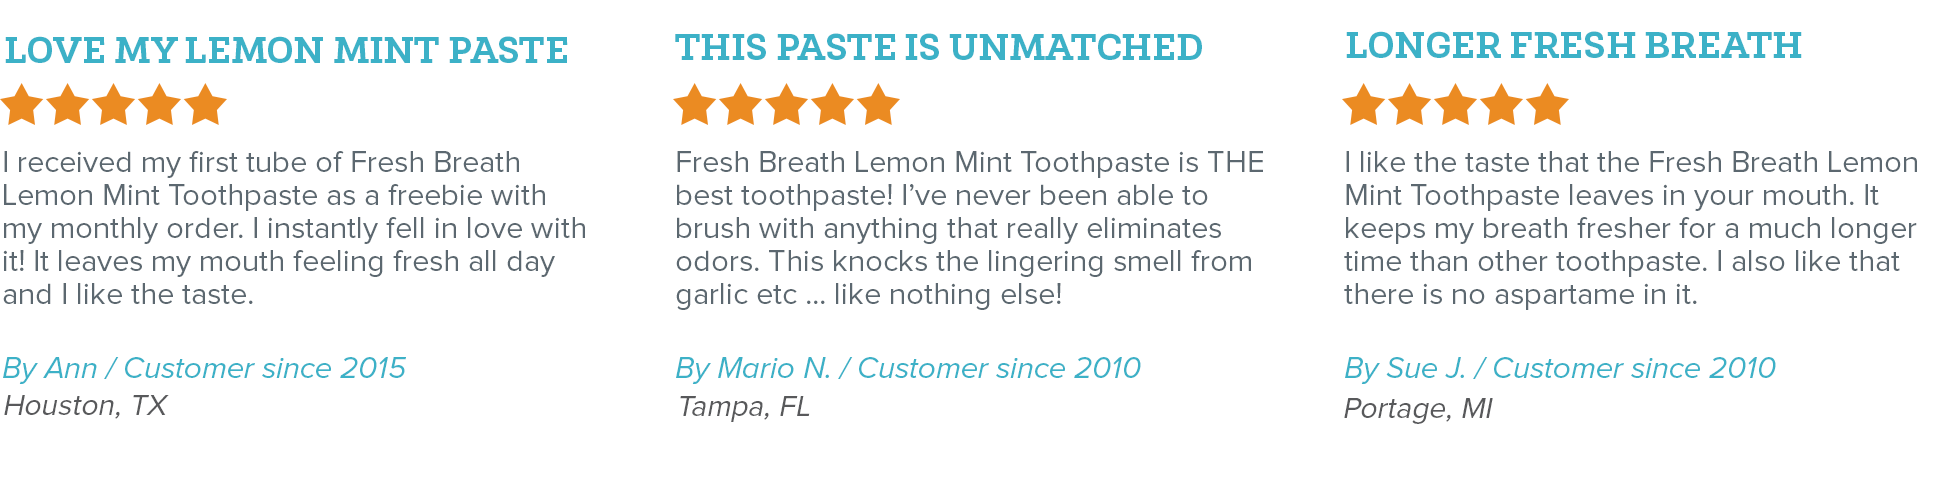 Oxyfresh - Eliminate Bad Breath - Fresh Breath Lemon-Mint Toothpaste Reviews